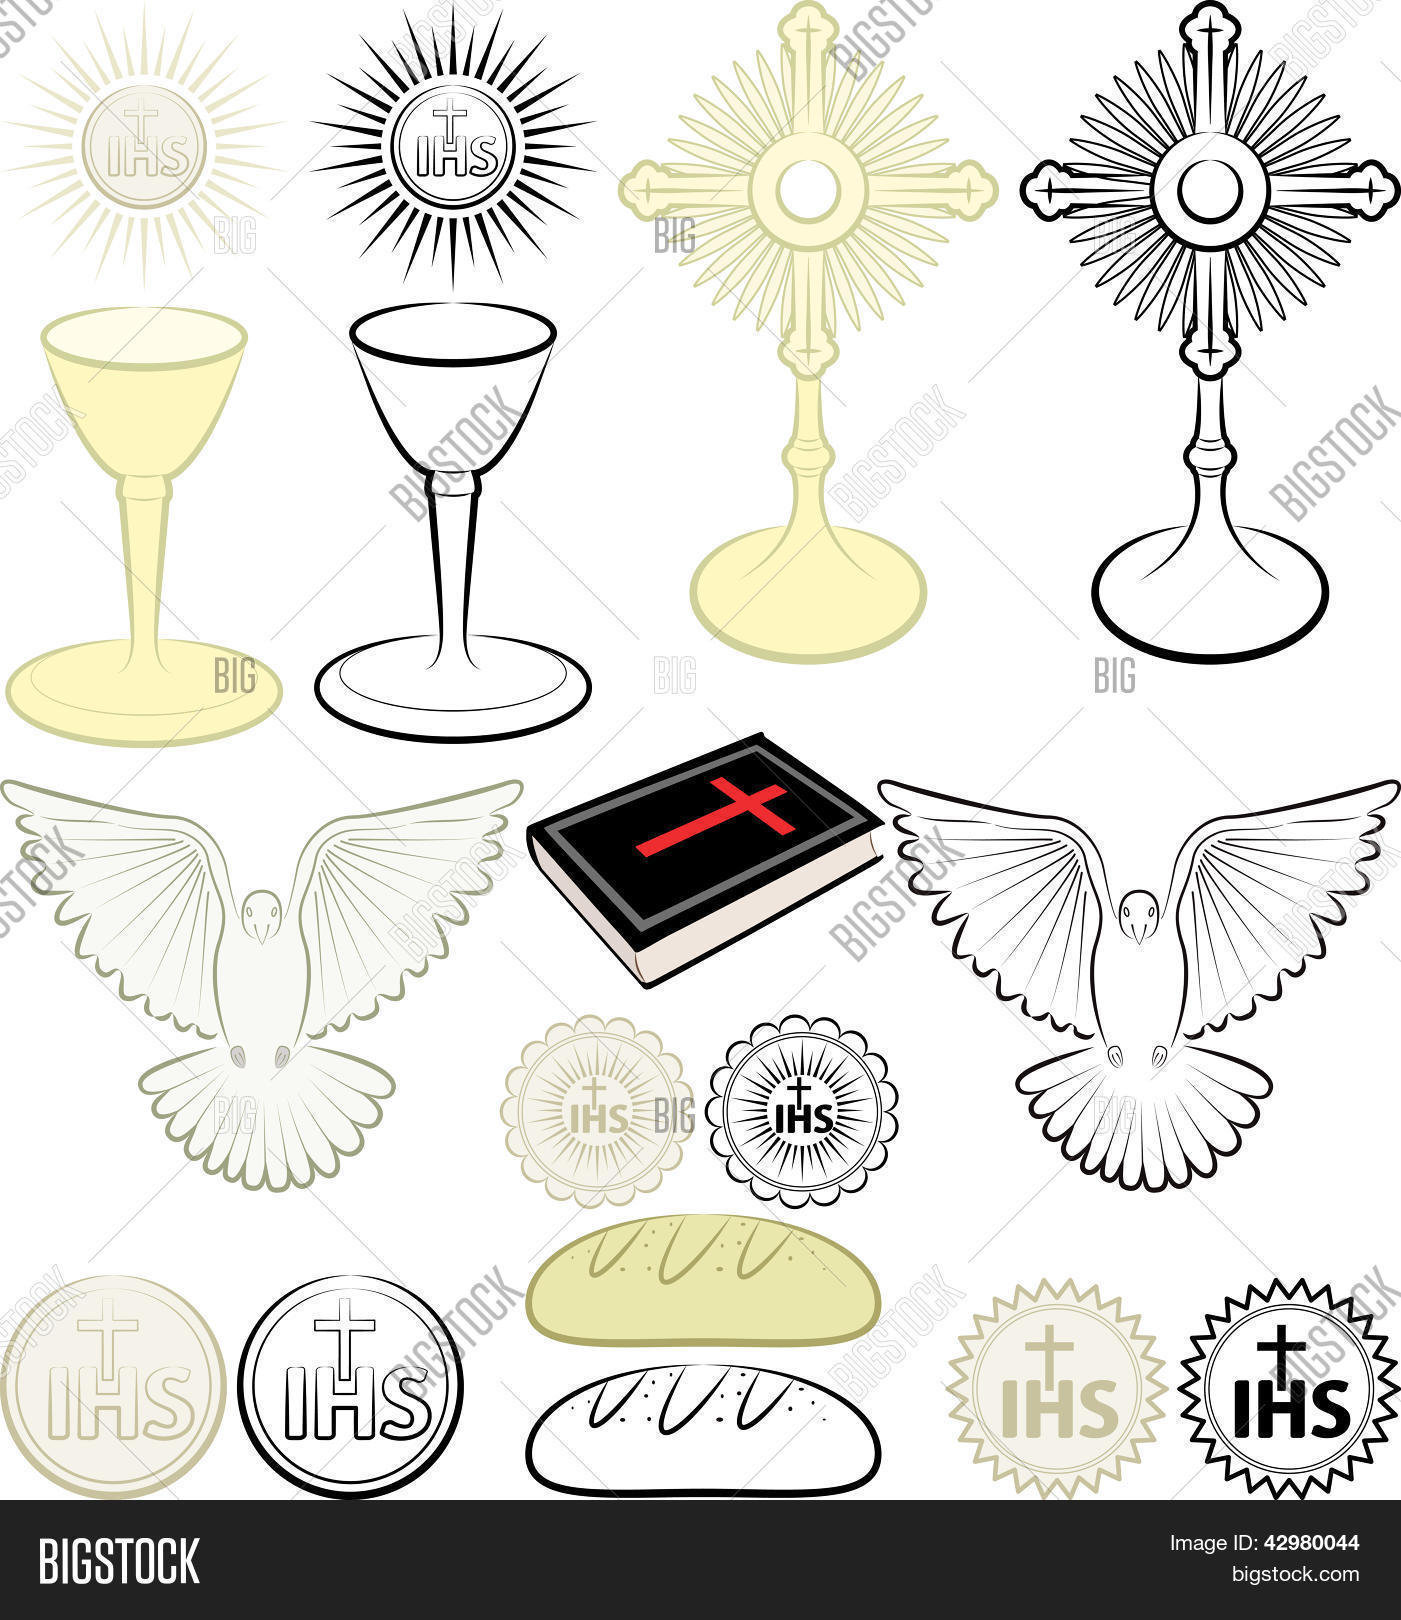 Symbols christianity vector photo bigstock symbols of christianity biocorpaavc Choice Image